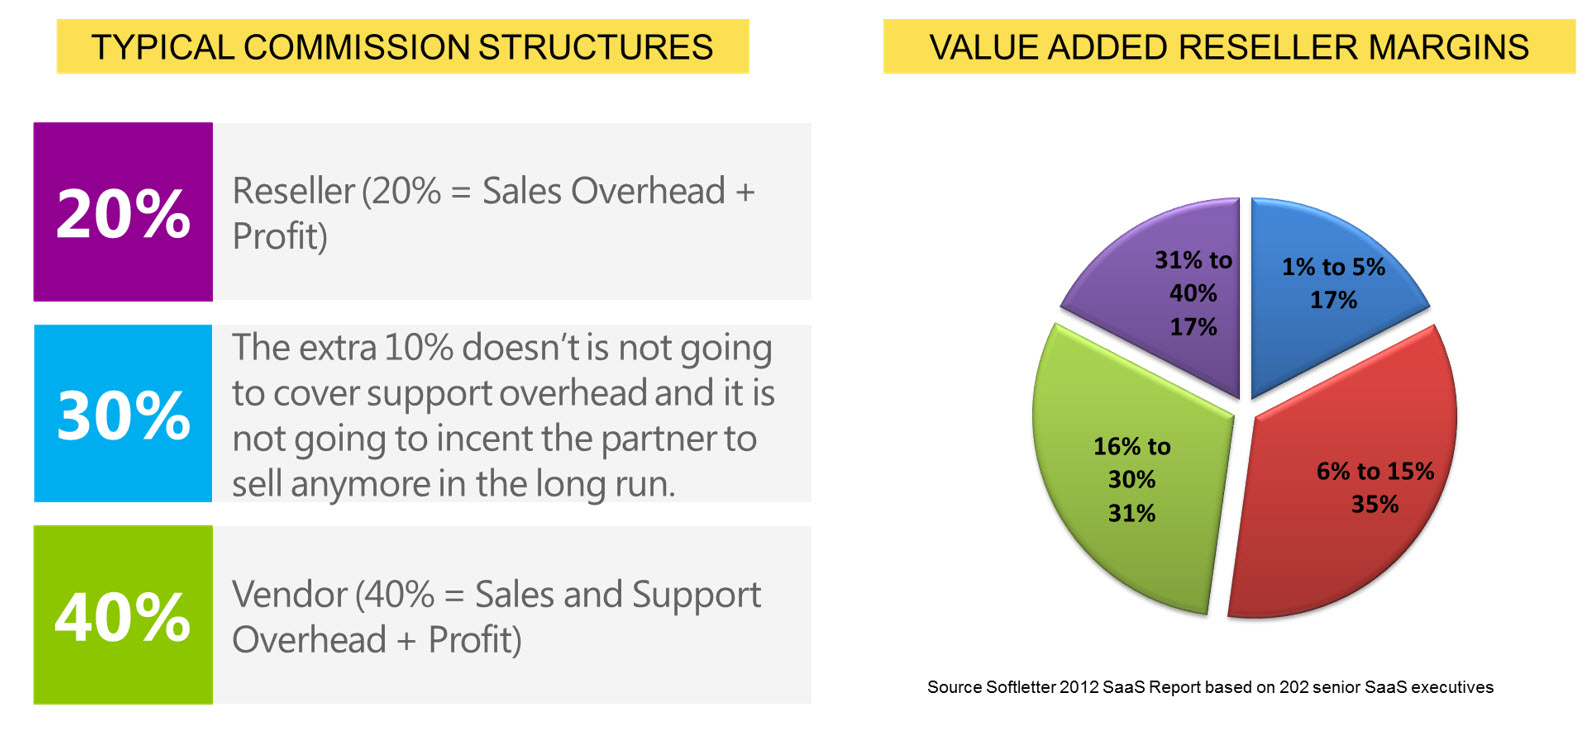 saas adoption level in nigeria According to idc, only 25% of organisations have repeatable strategies for cloud adoption, outlining the need for a best practice based repeatable framework for planning cloud adoption that drives business success.